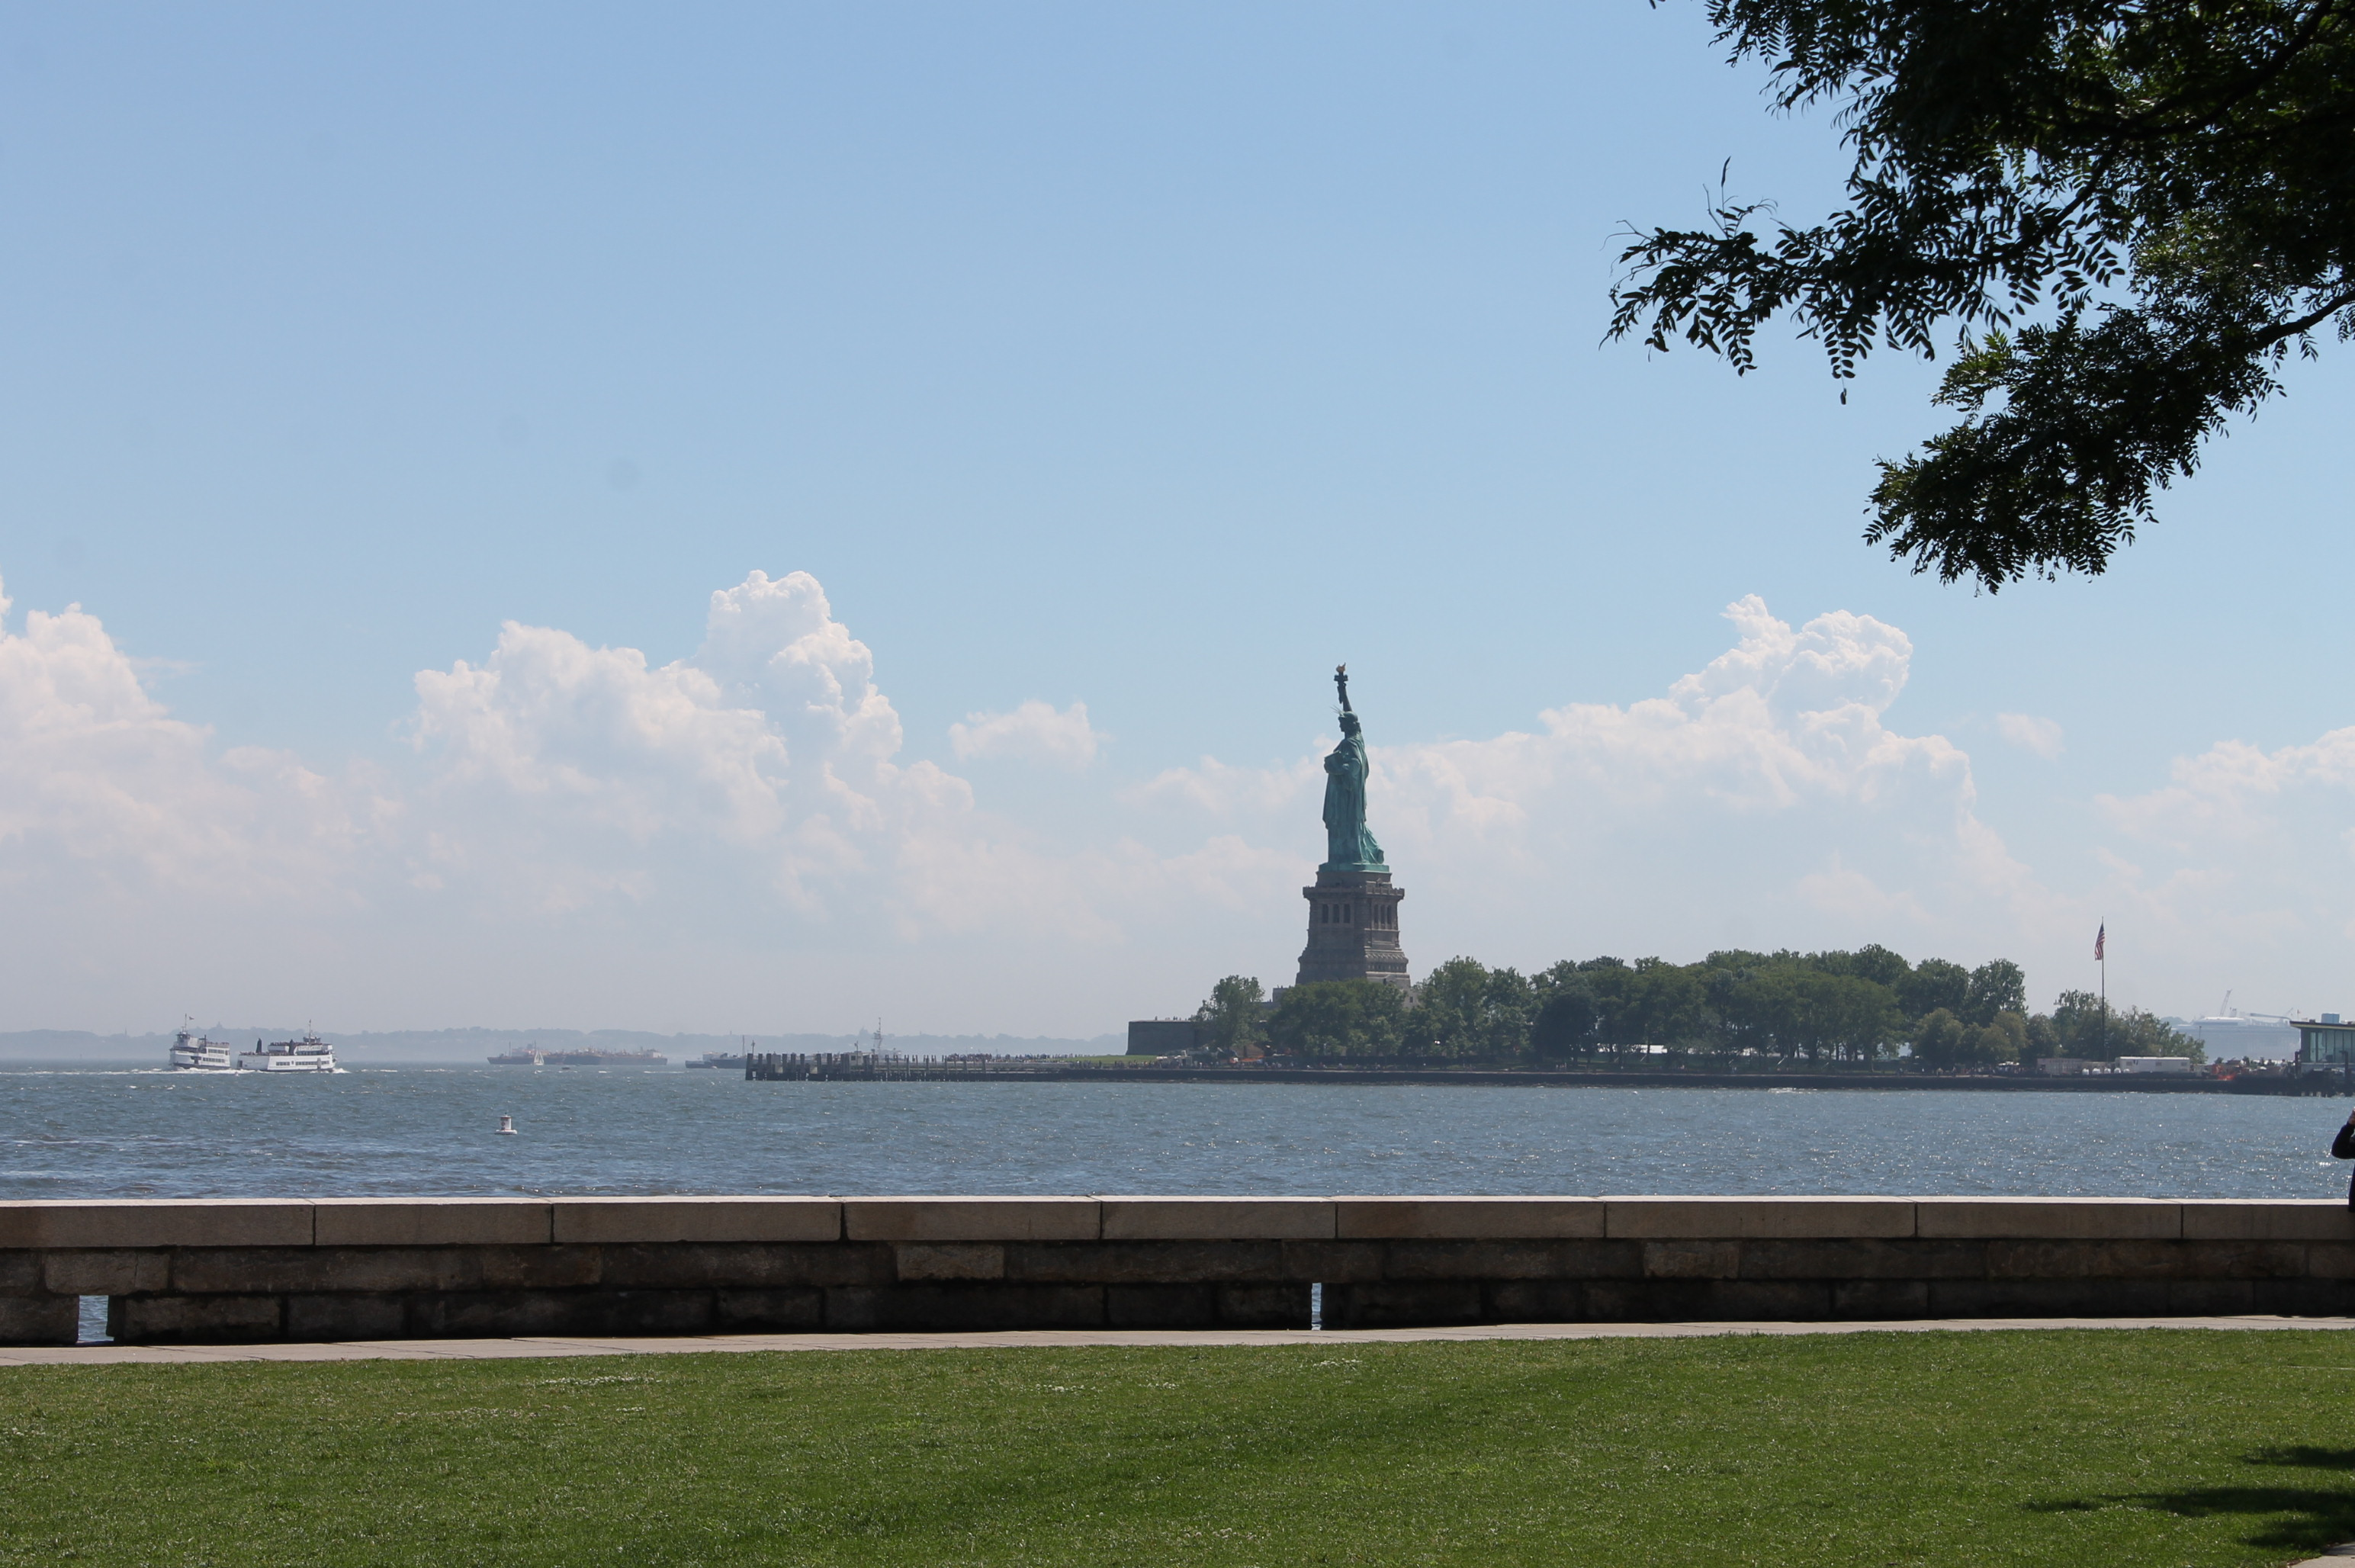 A,mazing view of the Stateu of Liberty from Ellis Island